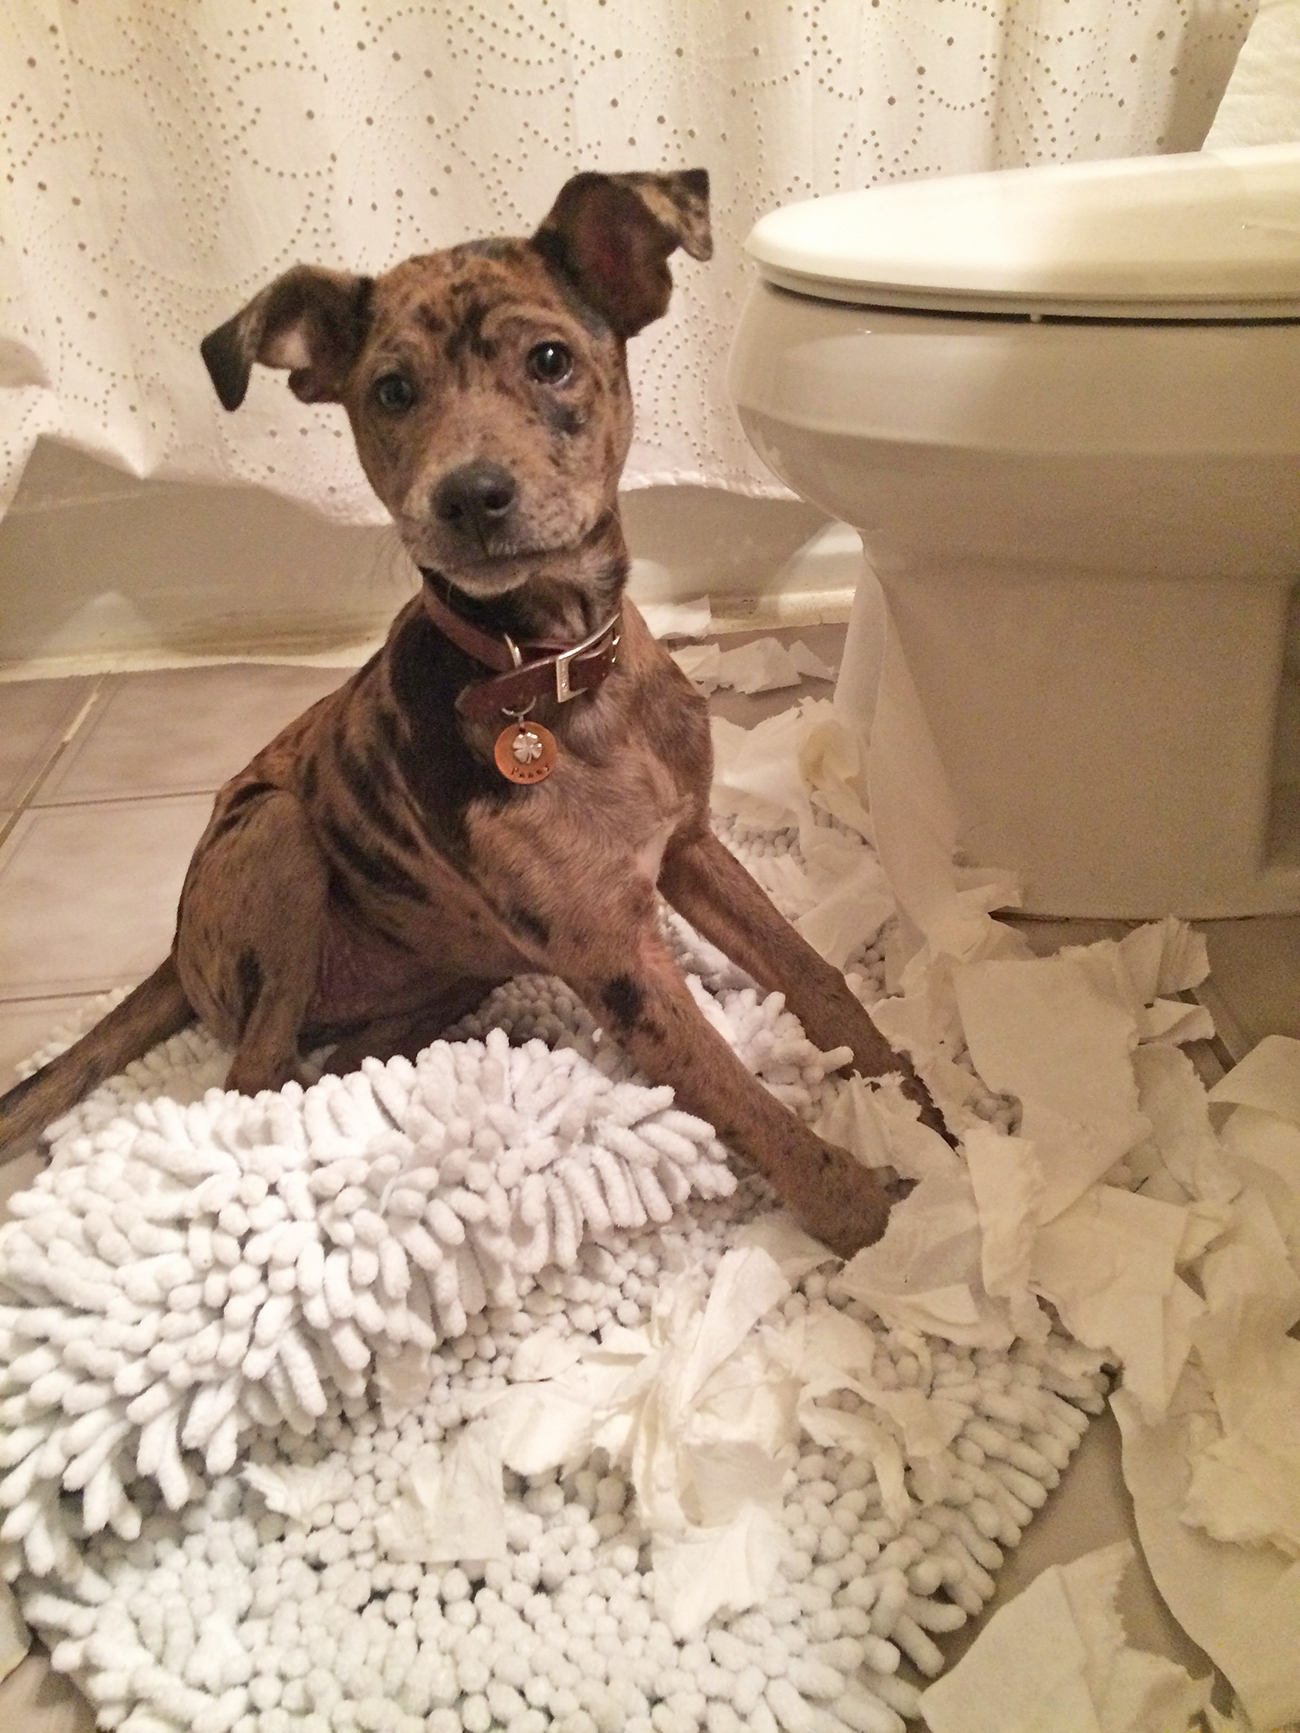 Small brown dog rips up toilet paper in bathroom